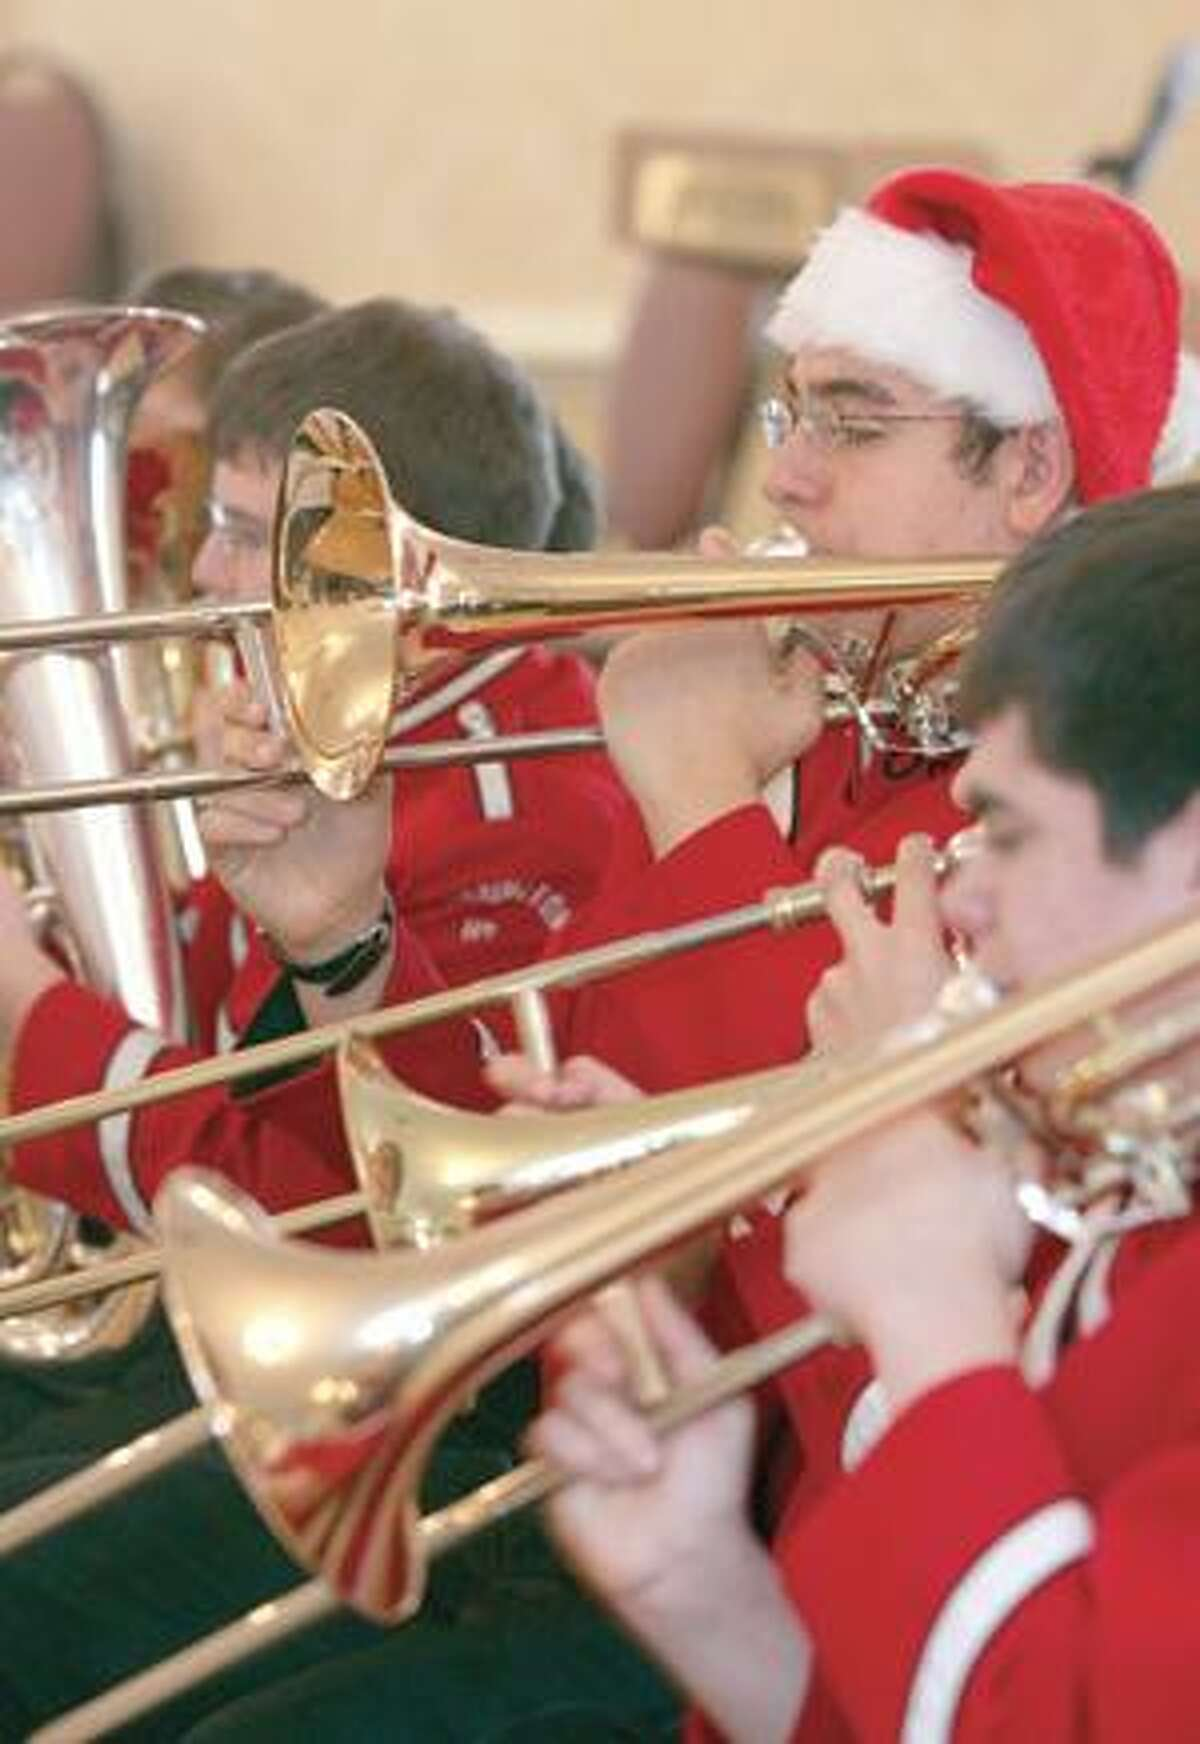 Bill Cornish Jr. of the Torrington High School Band performs Christmas songs for the seniors gathered at the Cornucopia in Torrington for the Edward E. Sullivan Senior Center holiday party Wednesday afternoon.